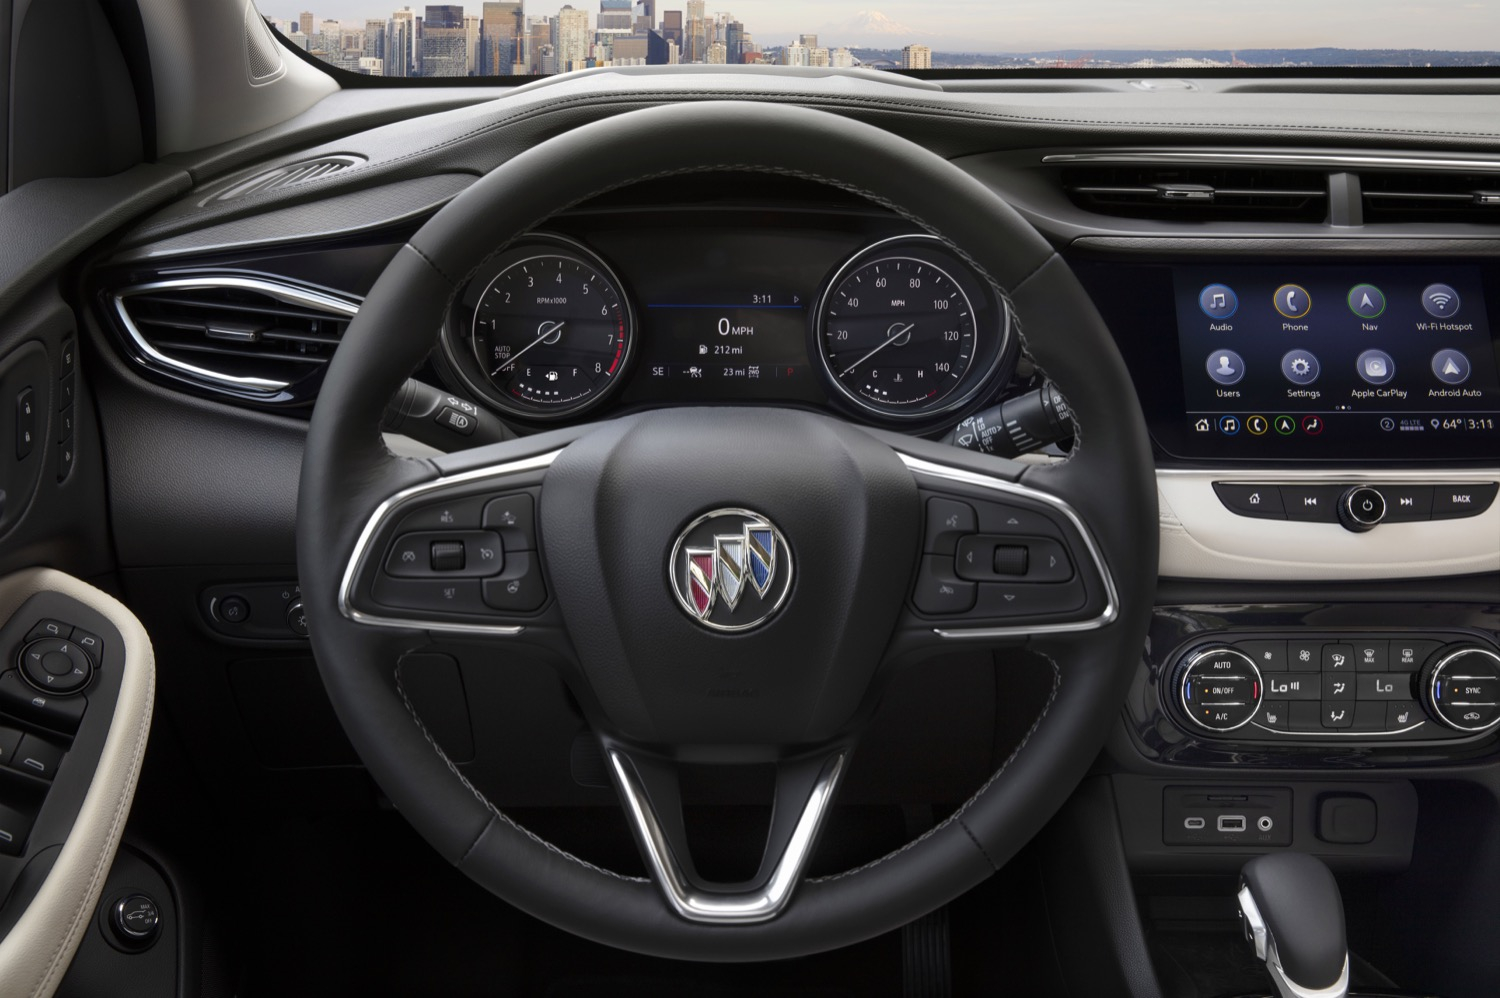 2020 Buick Encore Gx Info, Specs, Wiki | Gm Authority 2022 Buick Encore Colors, Interior, Awd